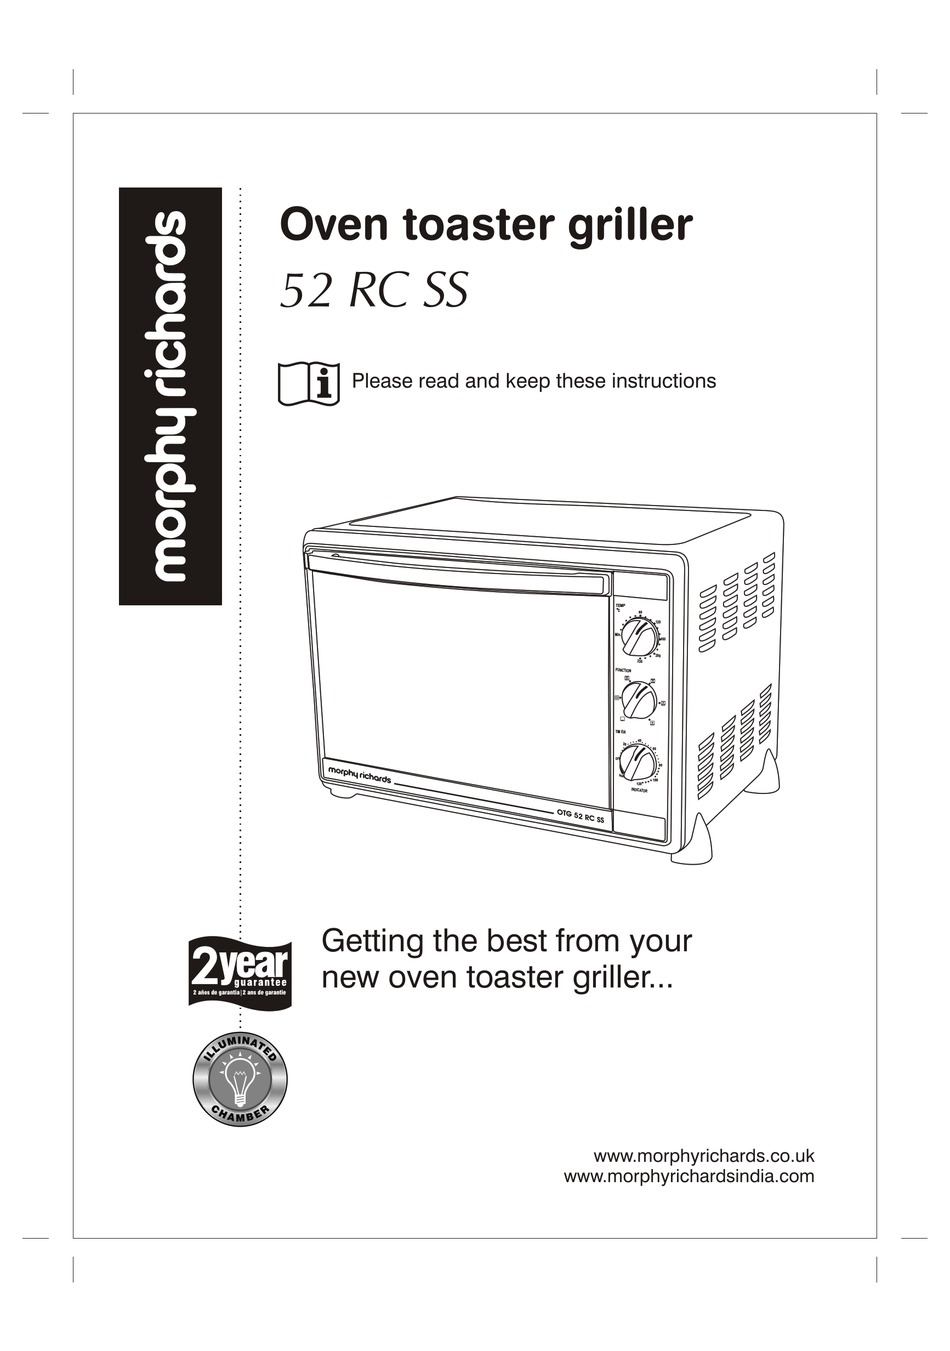 Morphy Richards 52 Rc Ss Instructions Manual Pdf Download Manualslib Fulfil your cravings at home with morphy richards otg 52rcss! morphy richards 52 rc ss instructions